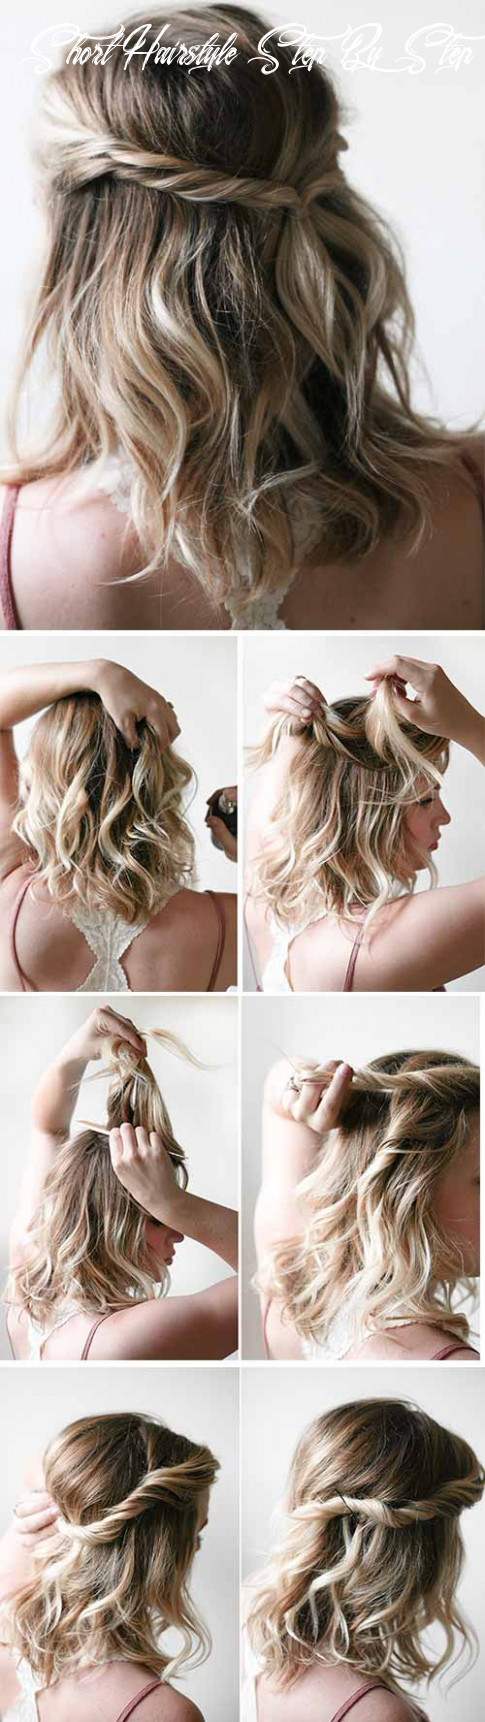 12 incredible diy short hairstyles a step by step guide short hairstyle step by step